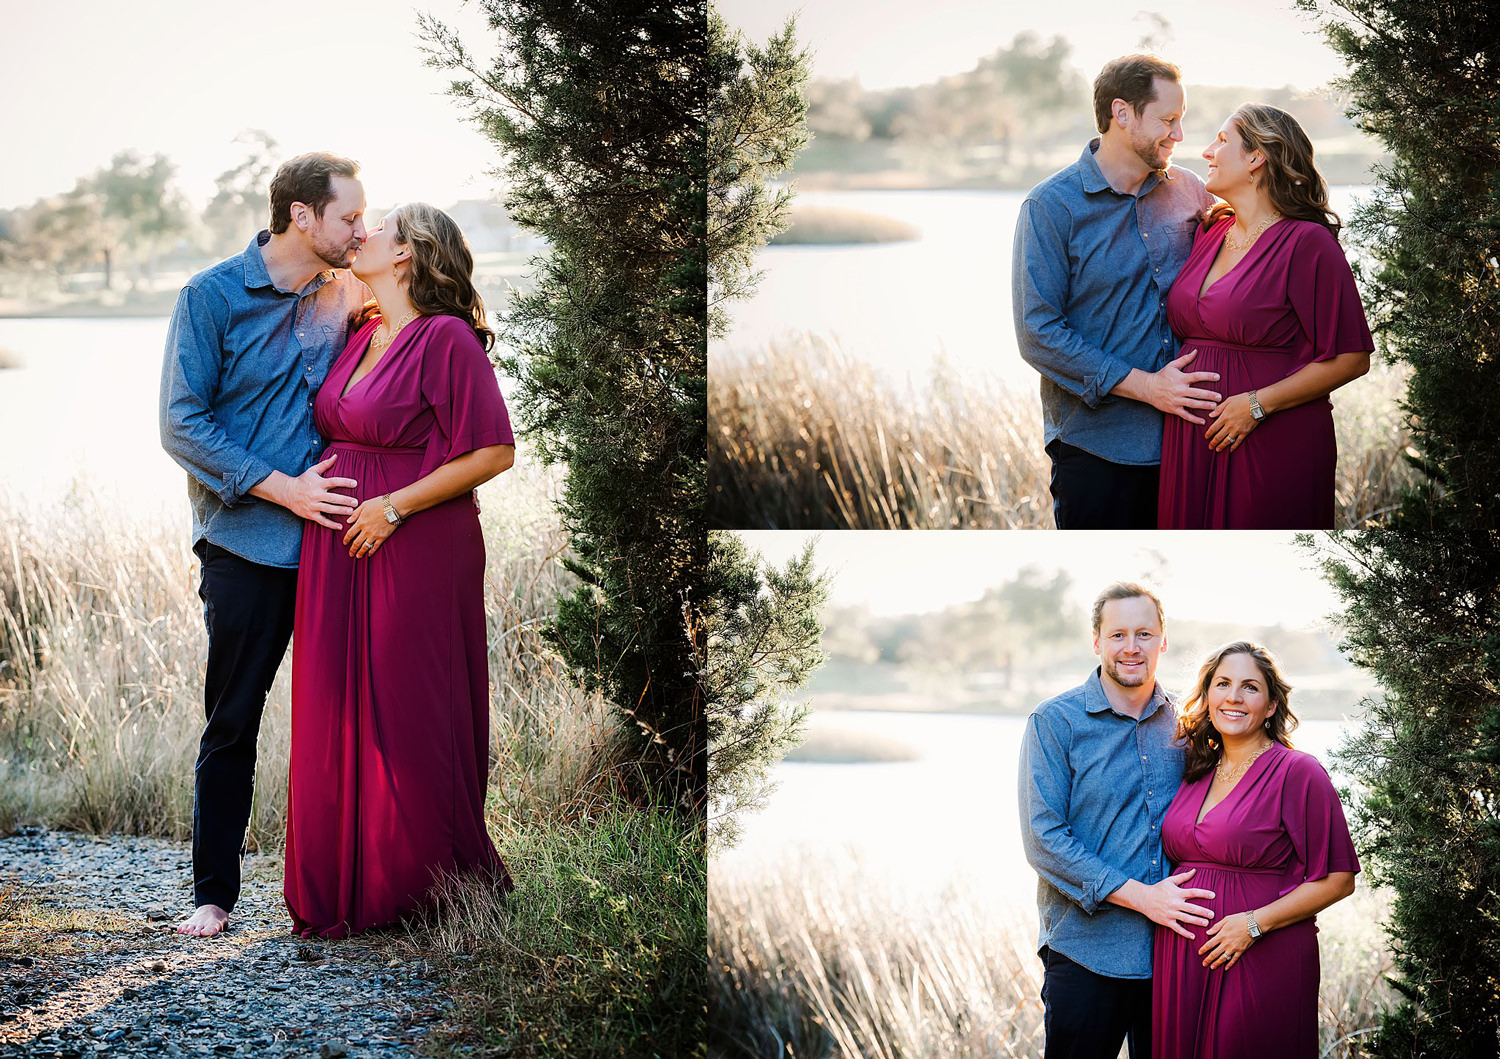 virginia-beach-maternity-photographer-melissa-bliss-photography-pleasure-house-point-session.jpg